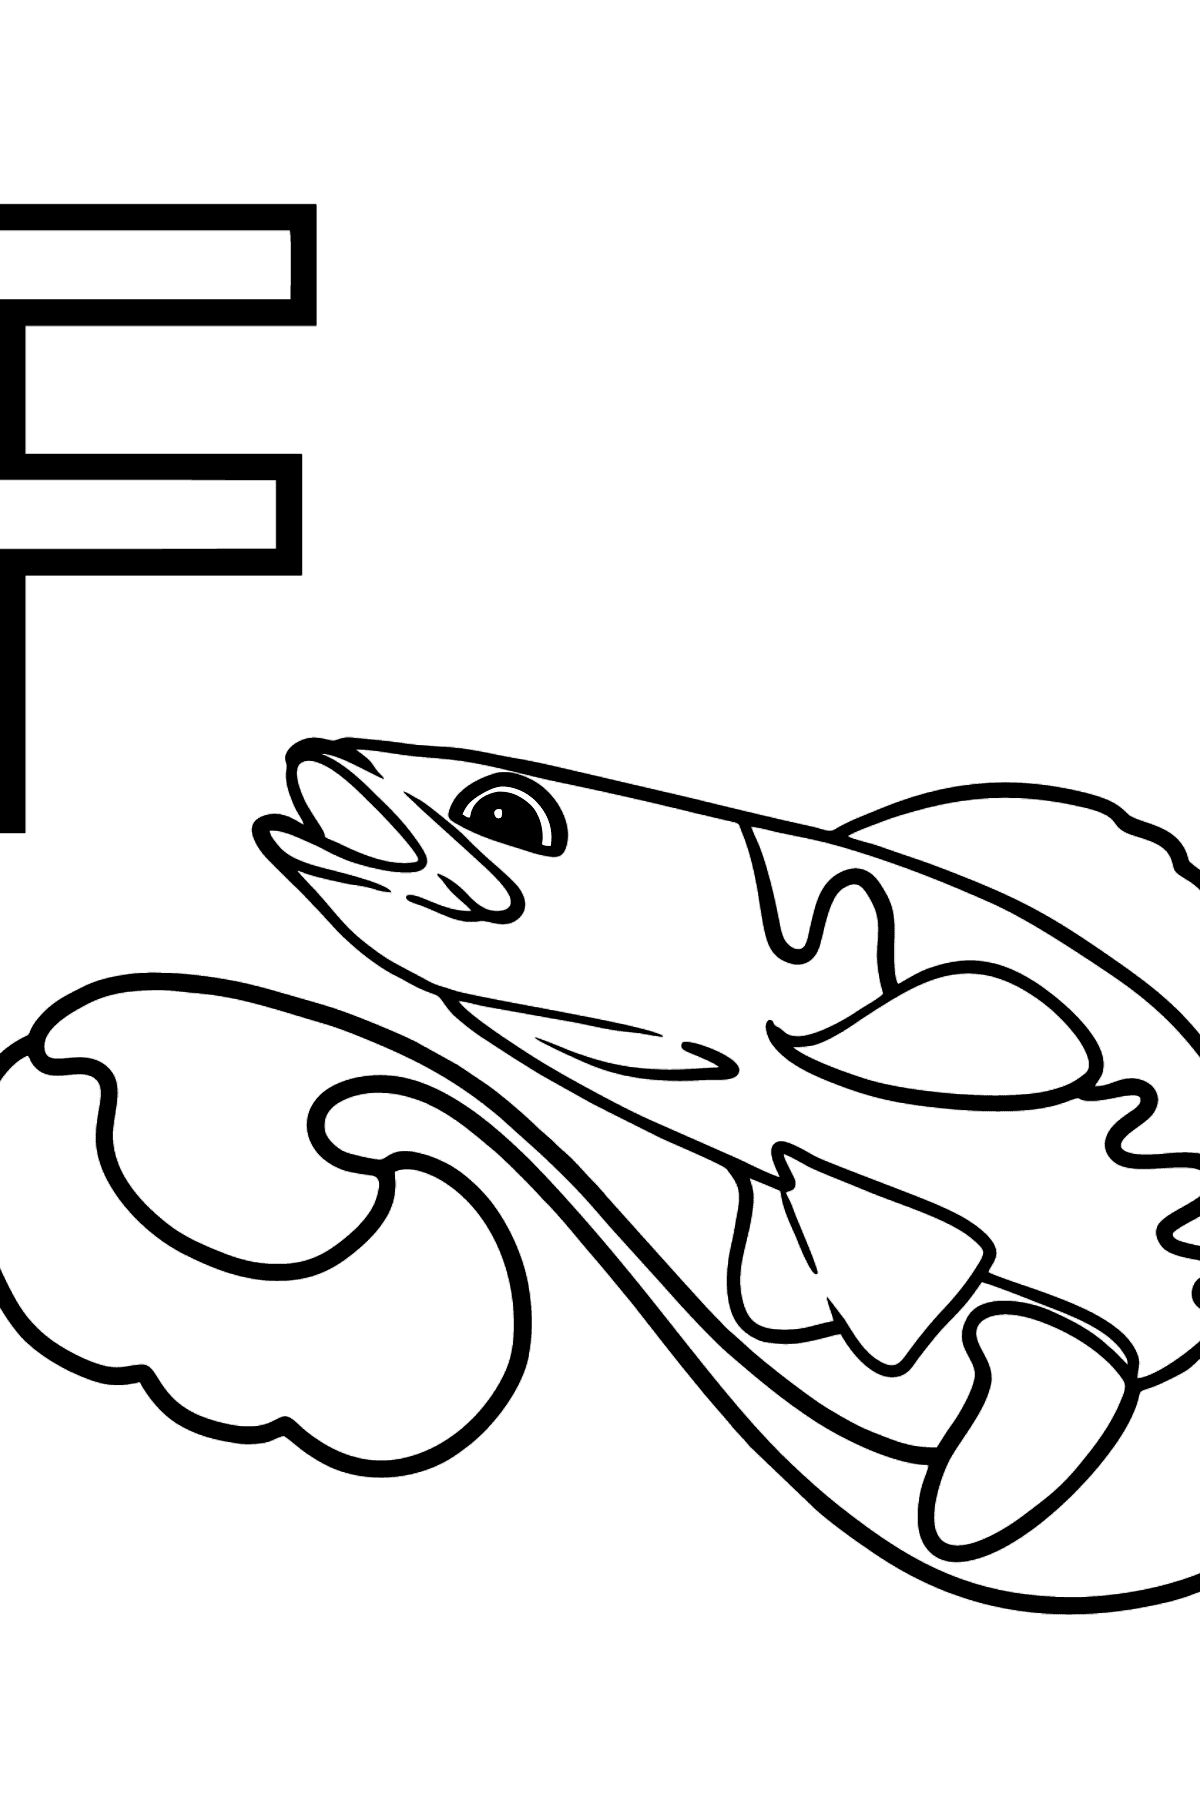 English Letter F coloring pages - FISH - Coloring Pages for Kids